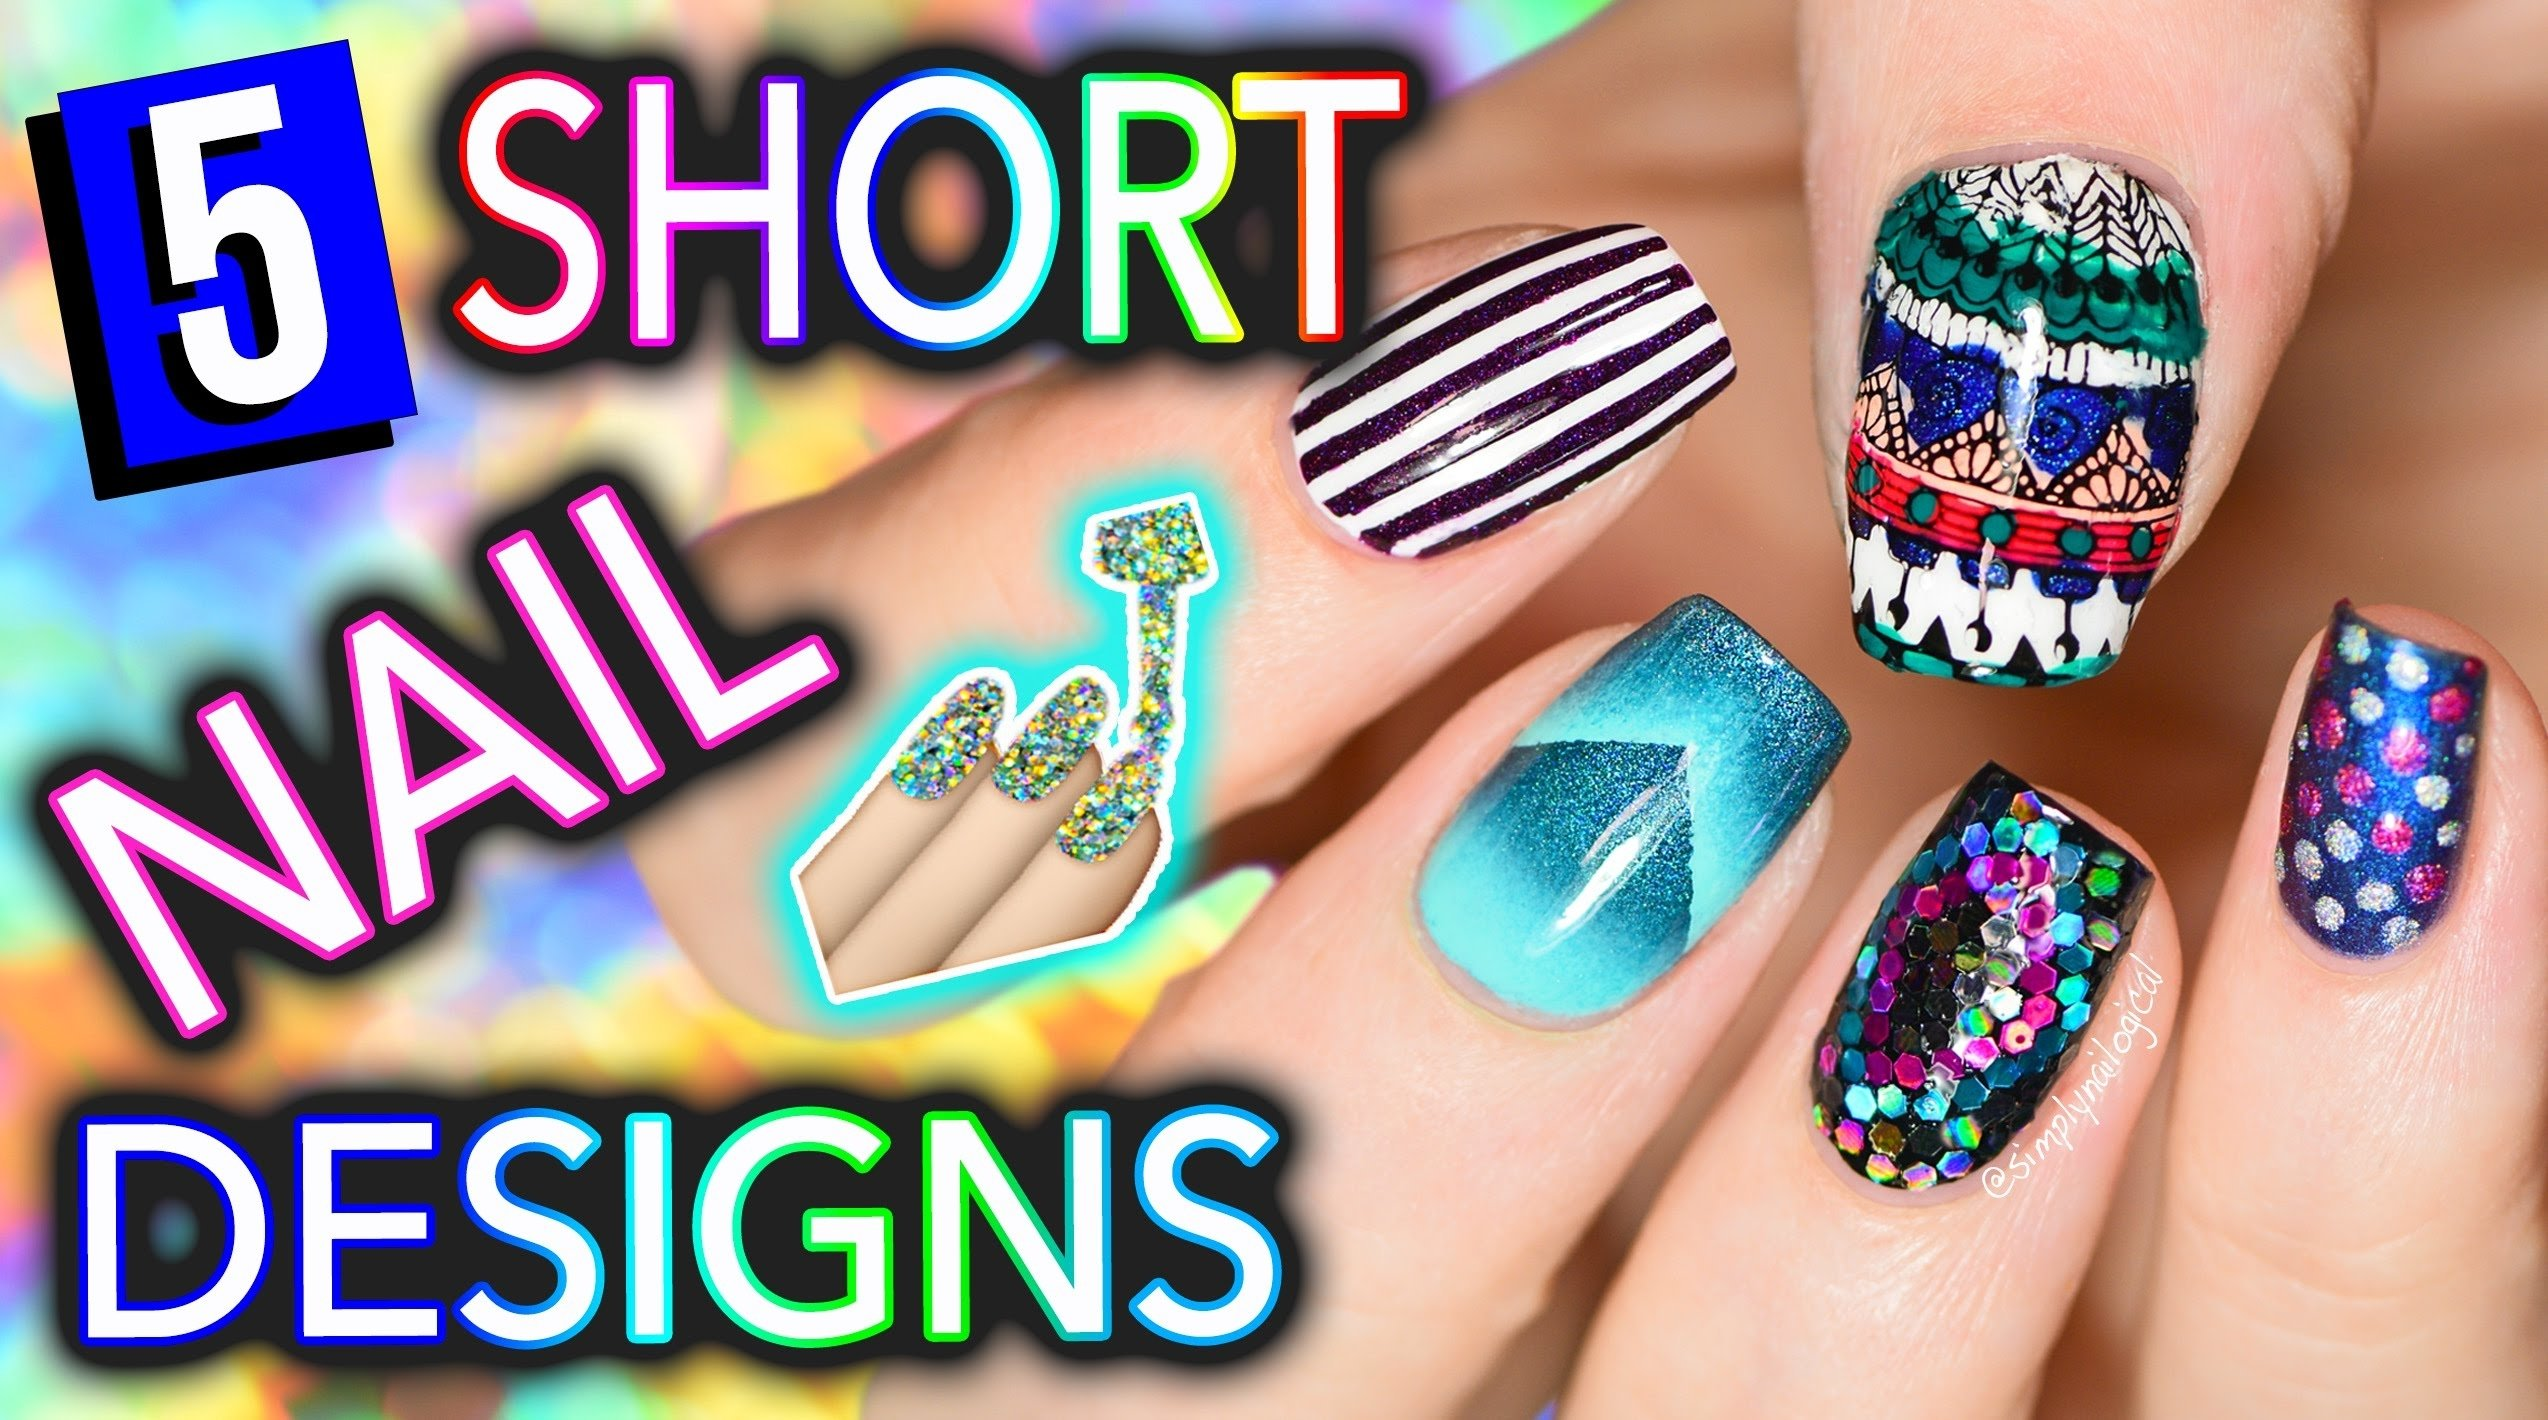 10 Attractive Easy Nail Ideas For Short Nails 5 easy nail art designs for short nails holosexuals part 1 1 2021